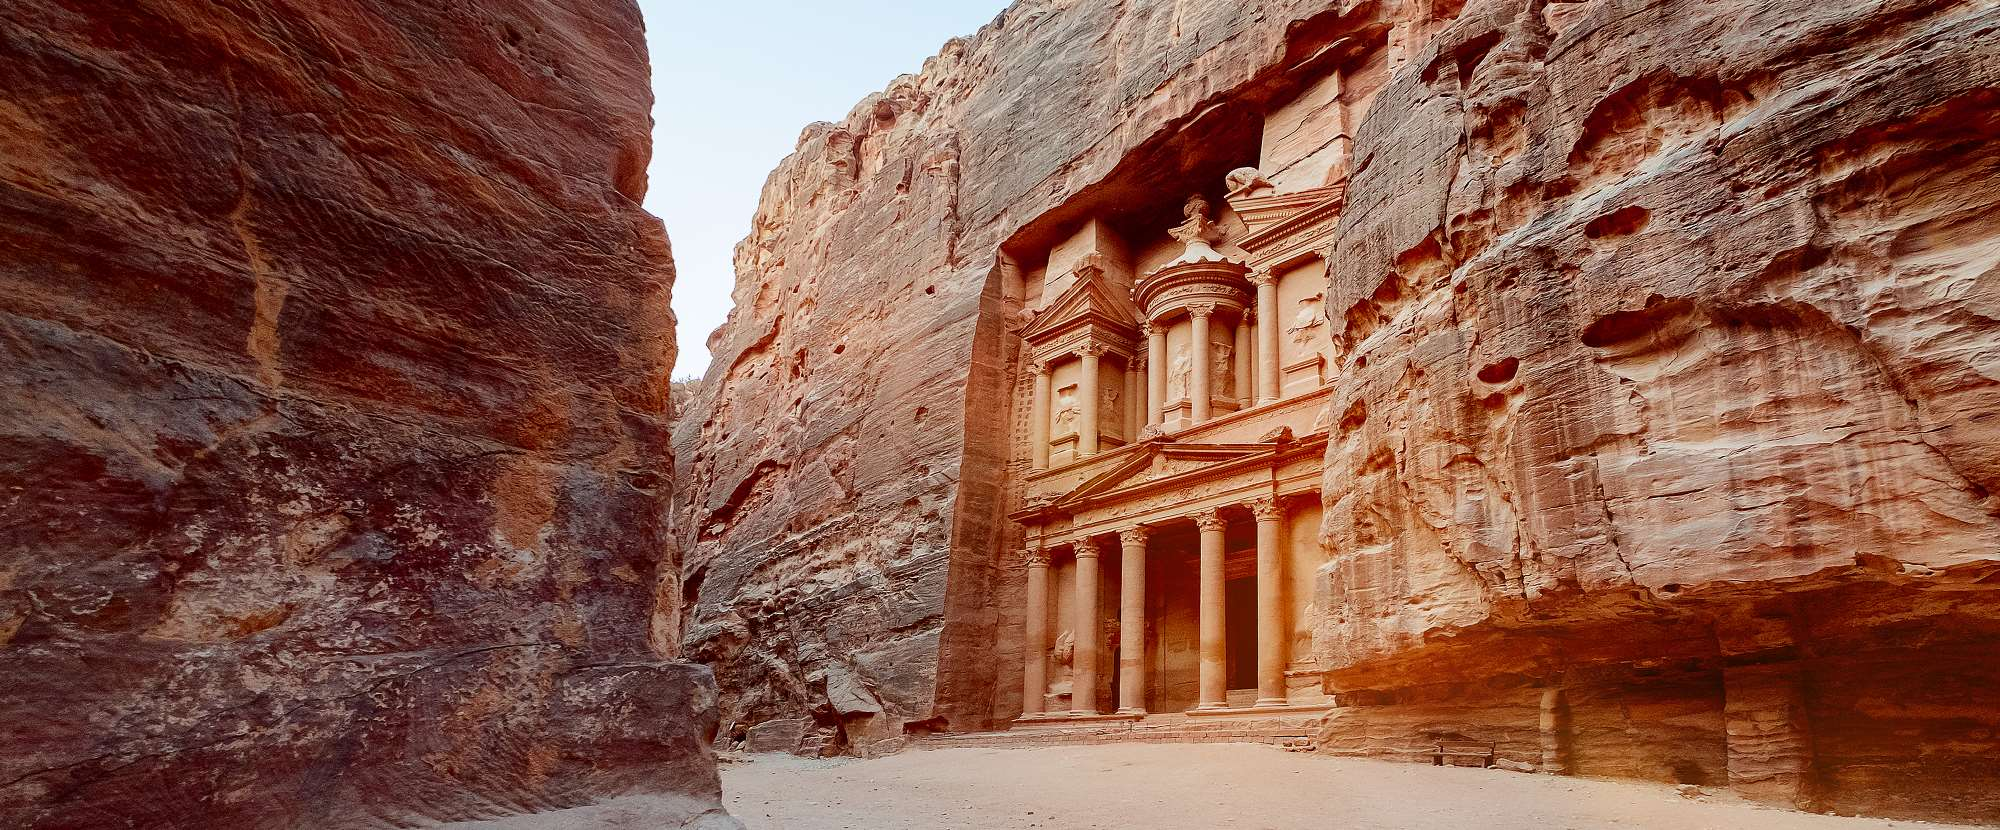 15 Incredible Landmarks in Jordan You Don't Want to Miss